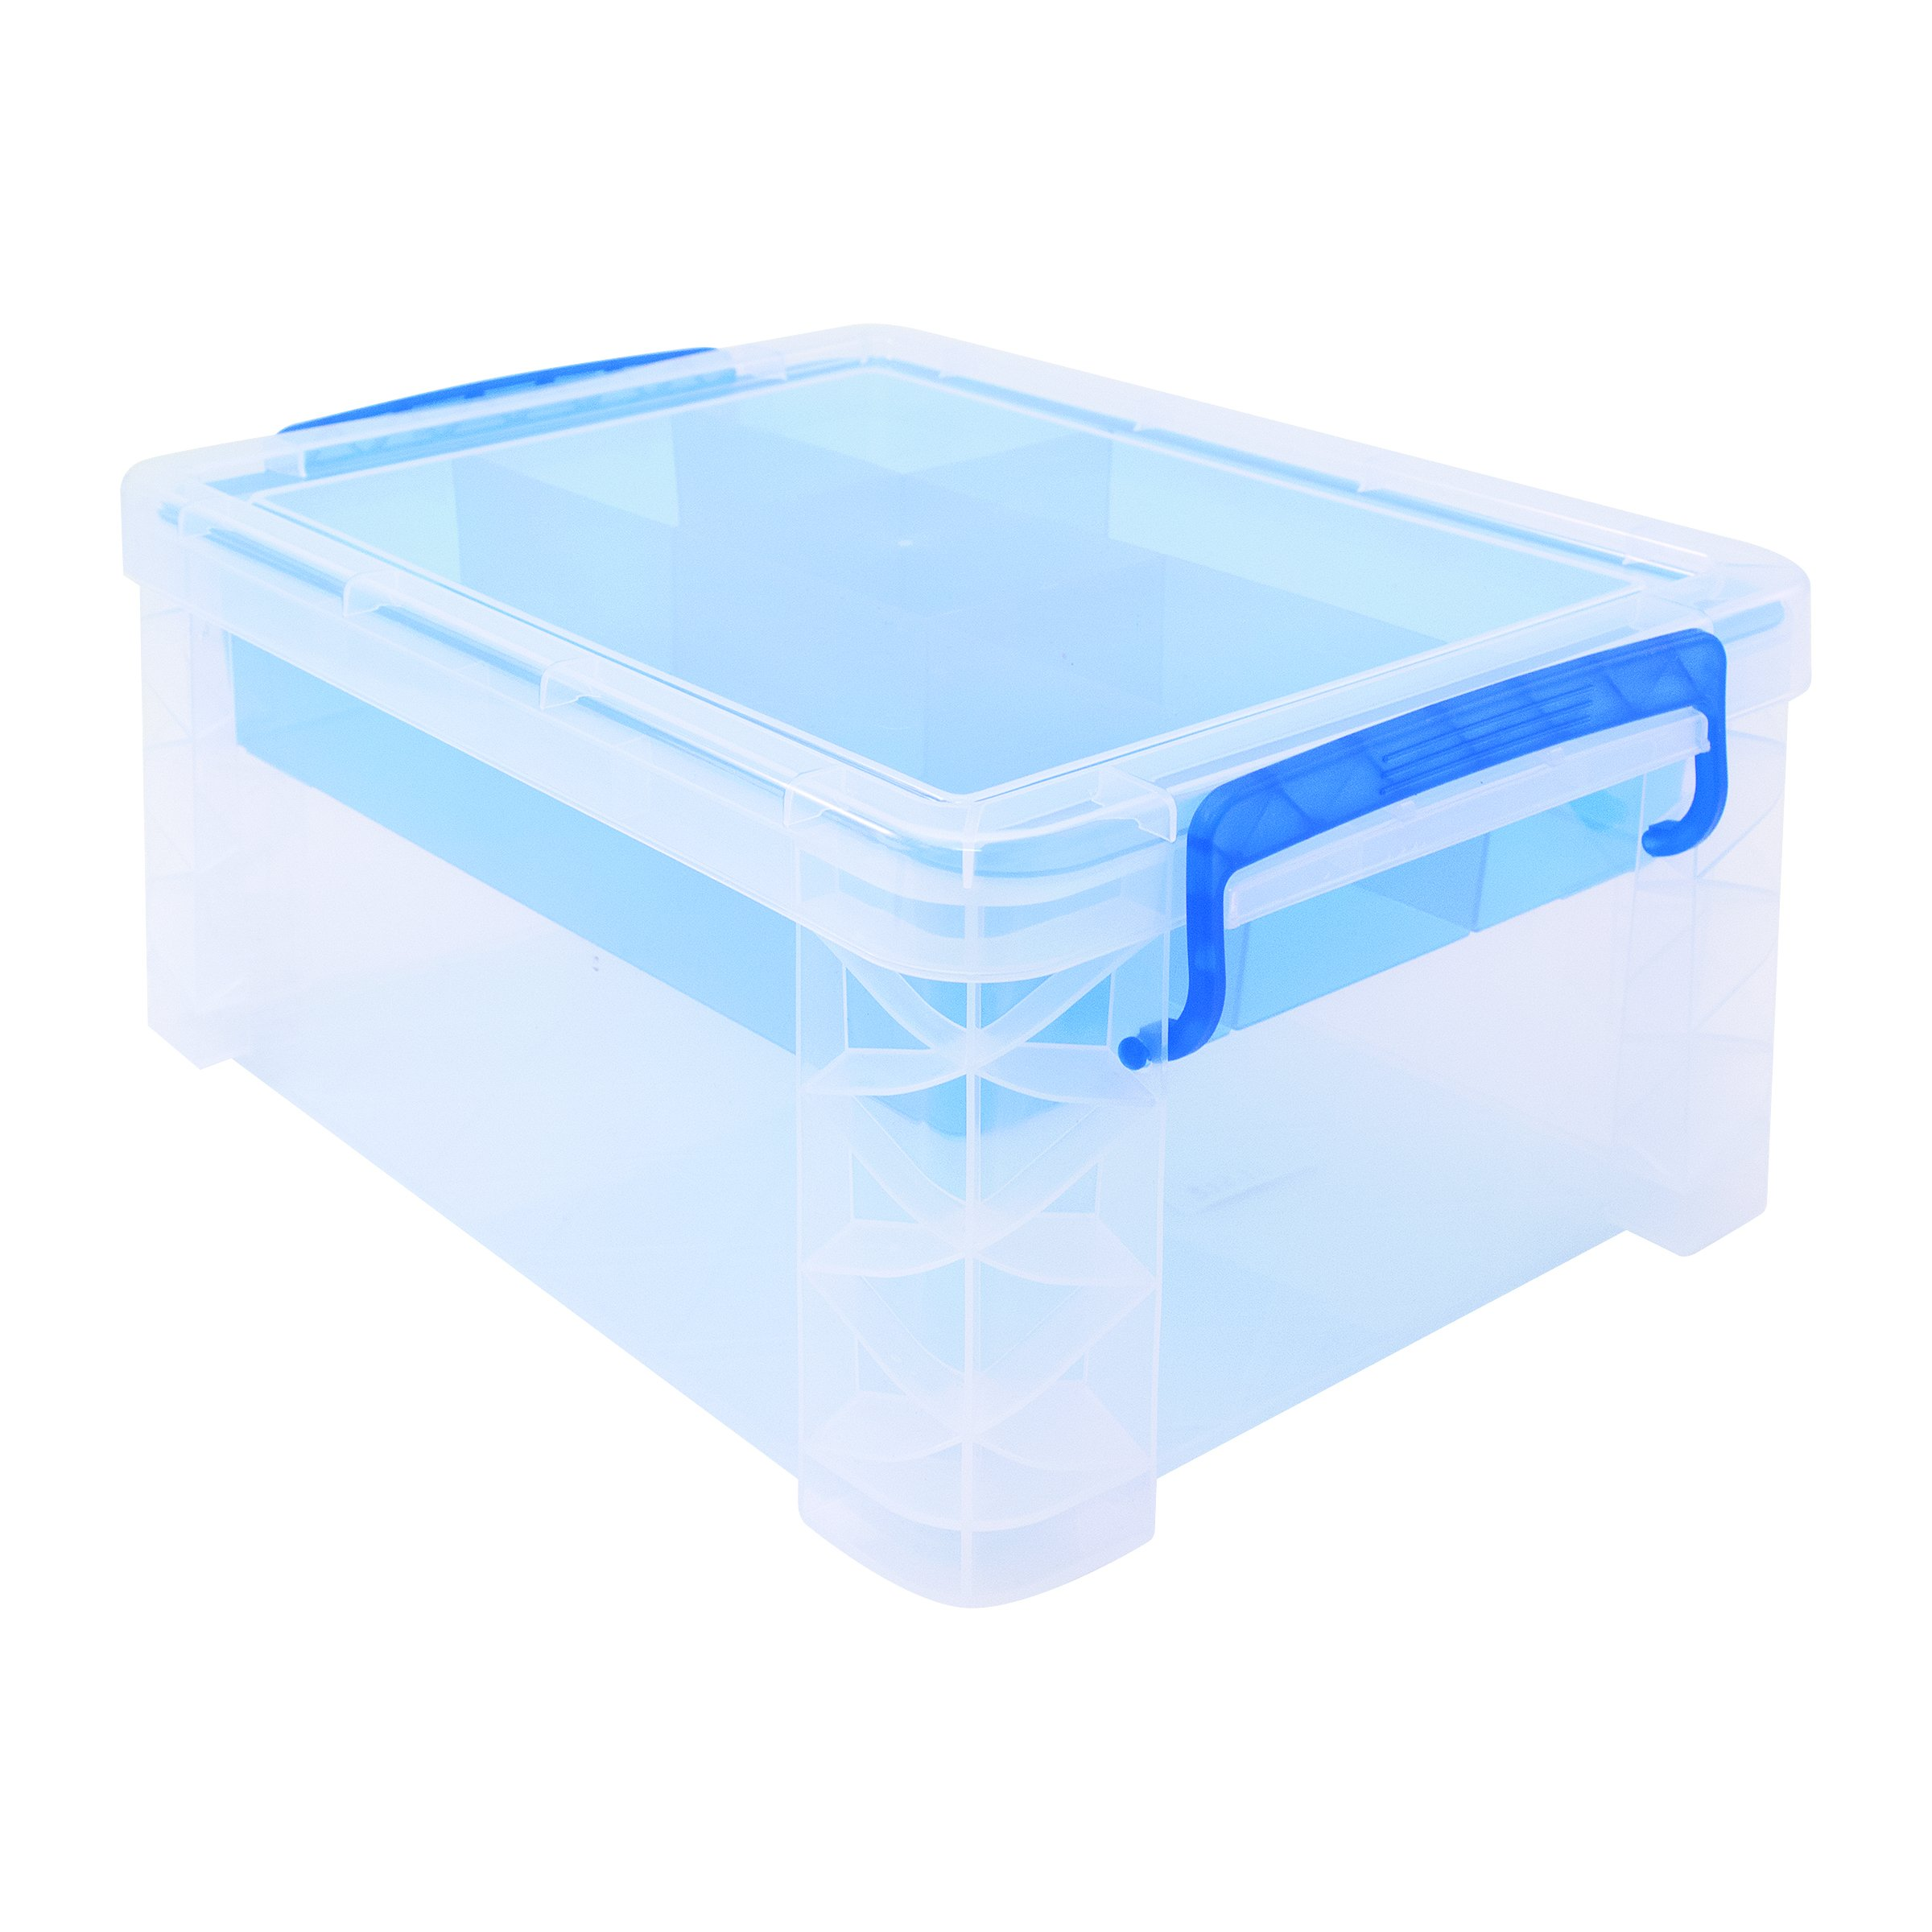 Super Stacker Divided Storage Box with Removable Divider Tray, 14.25'' x 10.3'' x 6.5'', Clear (37371)